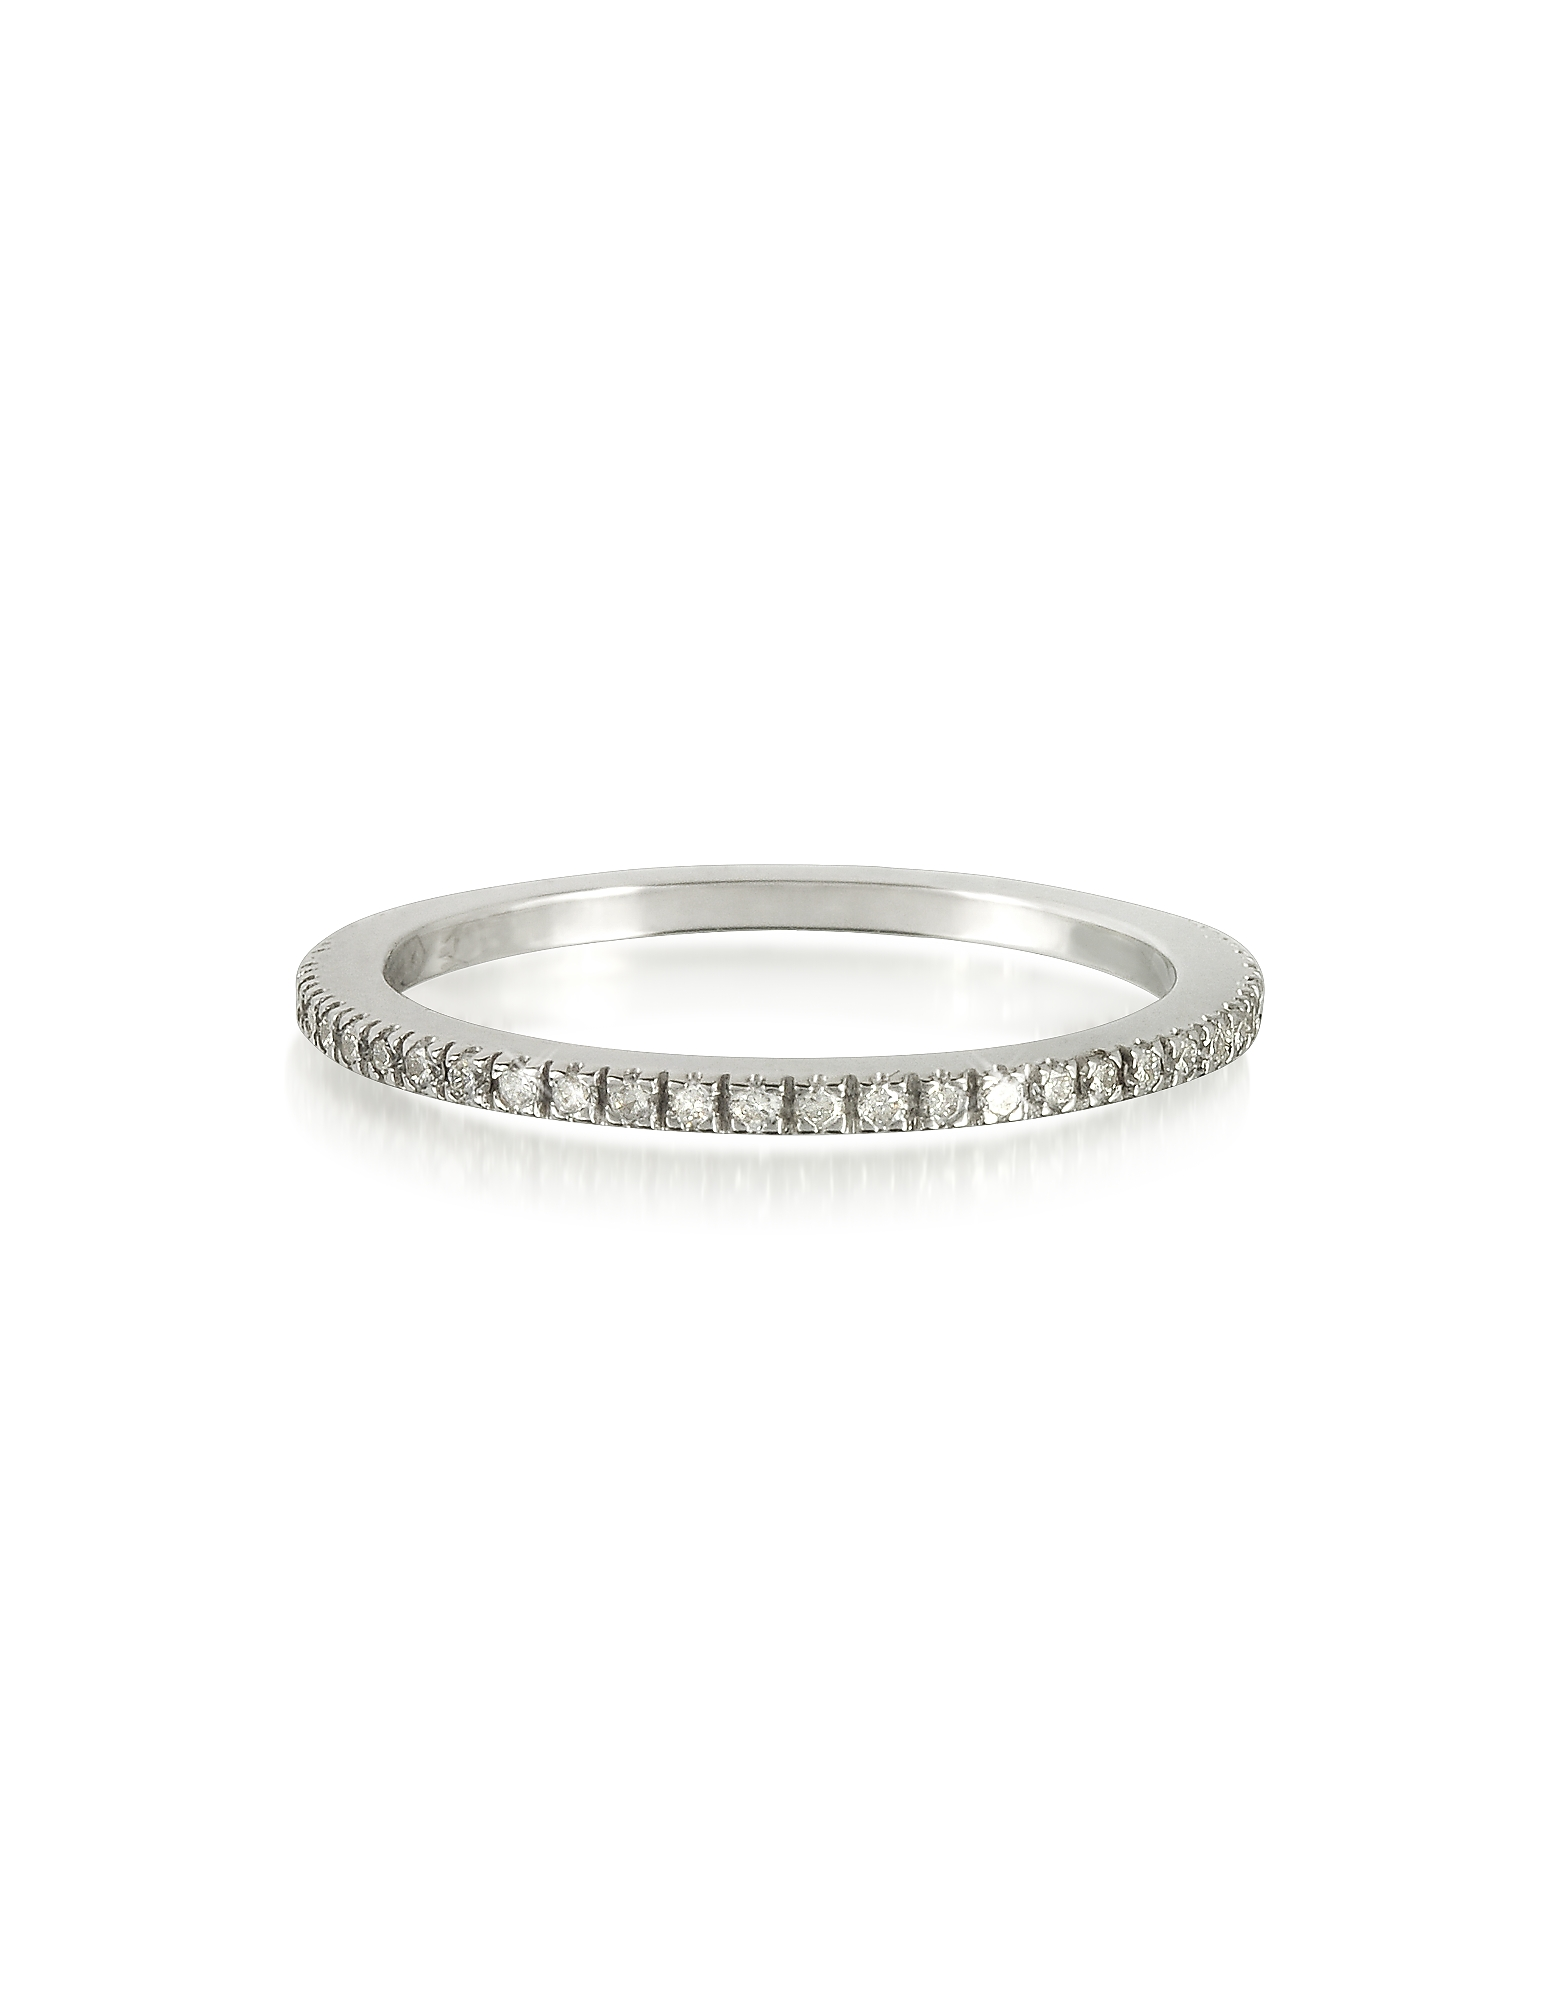 Forzieri Rings, Diamond Eternity Band Ring